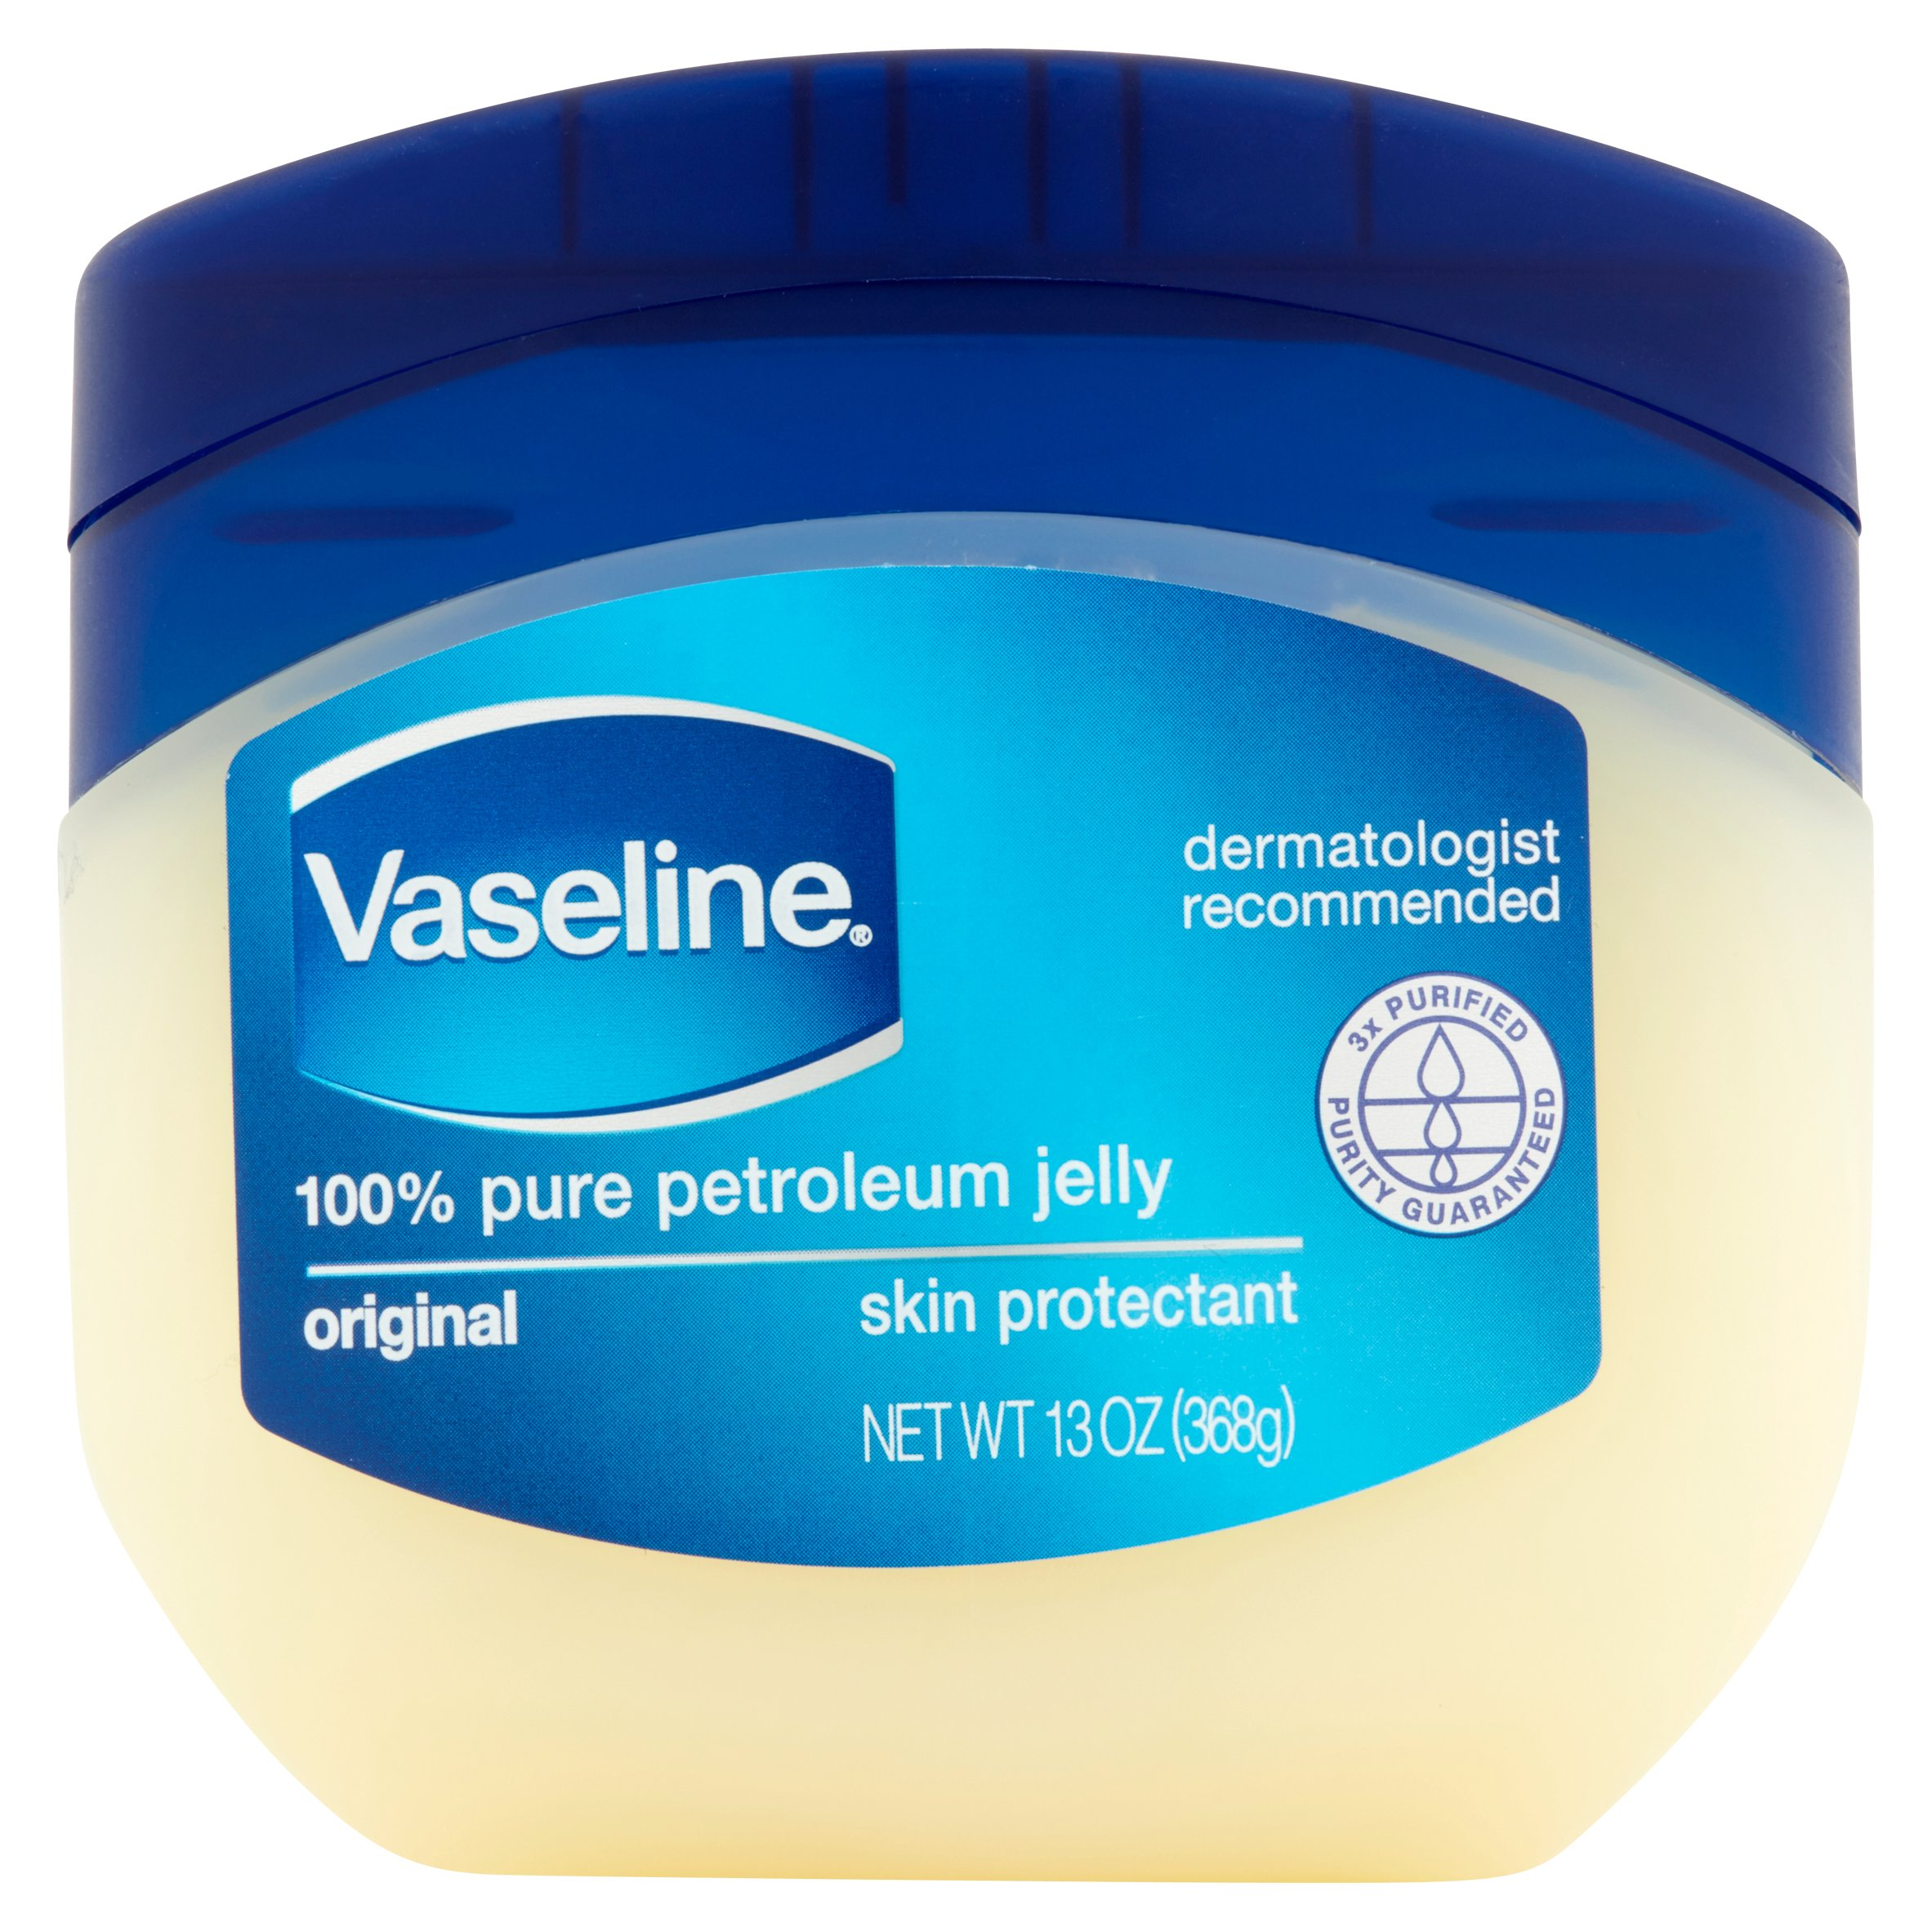 Vaseline Original Petroleum Jelly, Skin Protectant, 13 oz